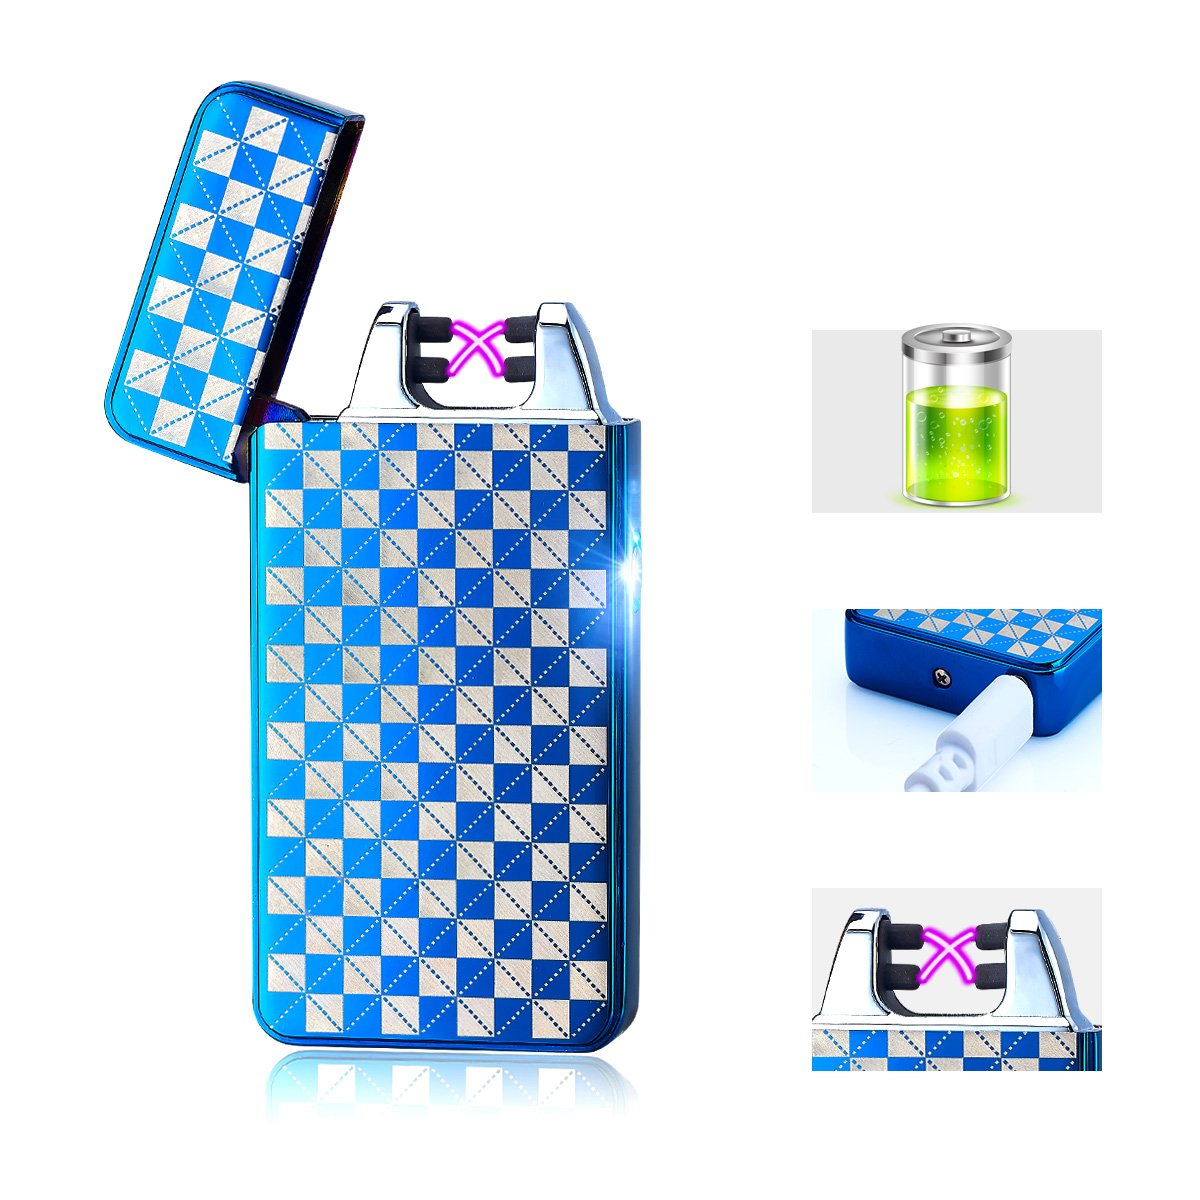 Usb Lighter,Lighters for Men and Women Windproof Usb Rechargeable Arc lighter Electric Lighter Best Gift